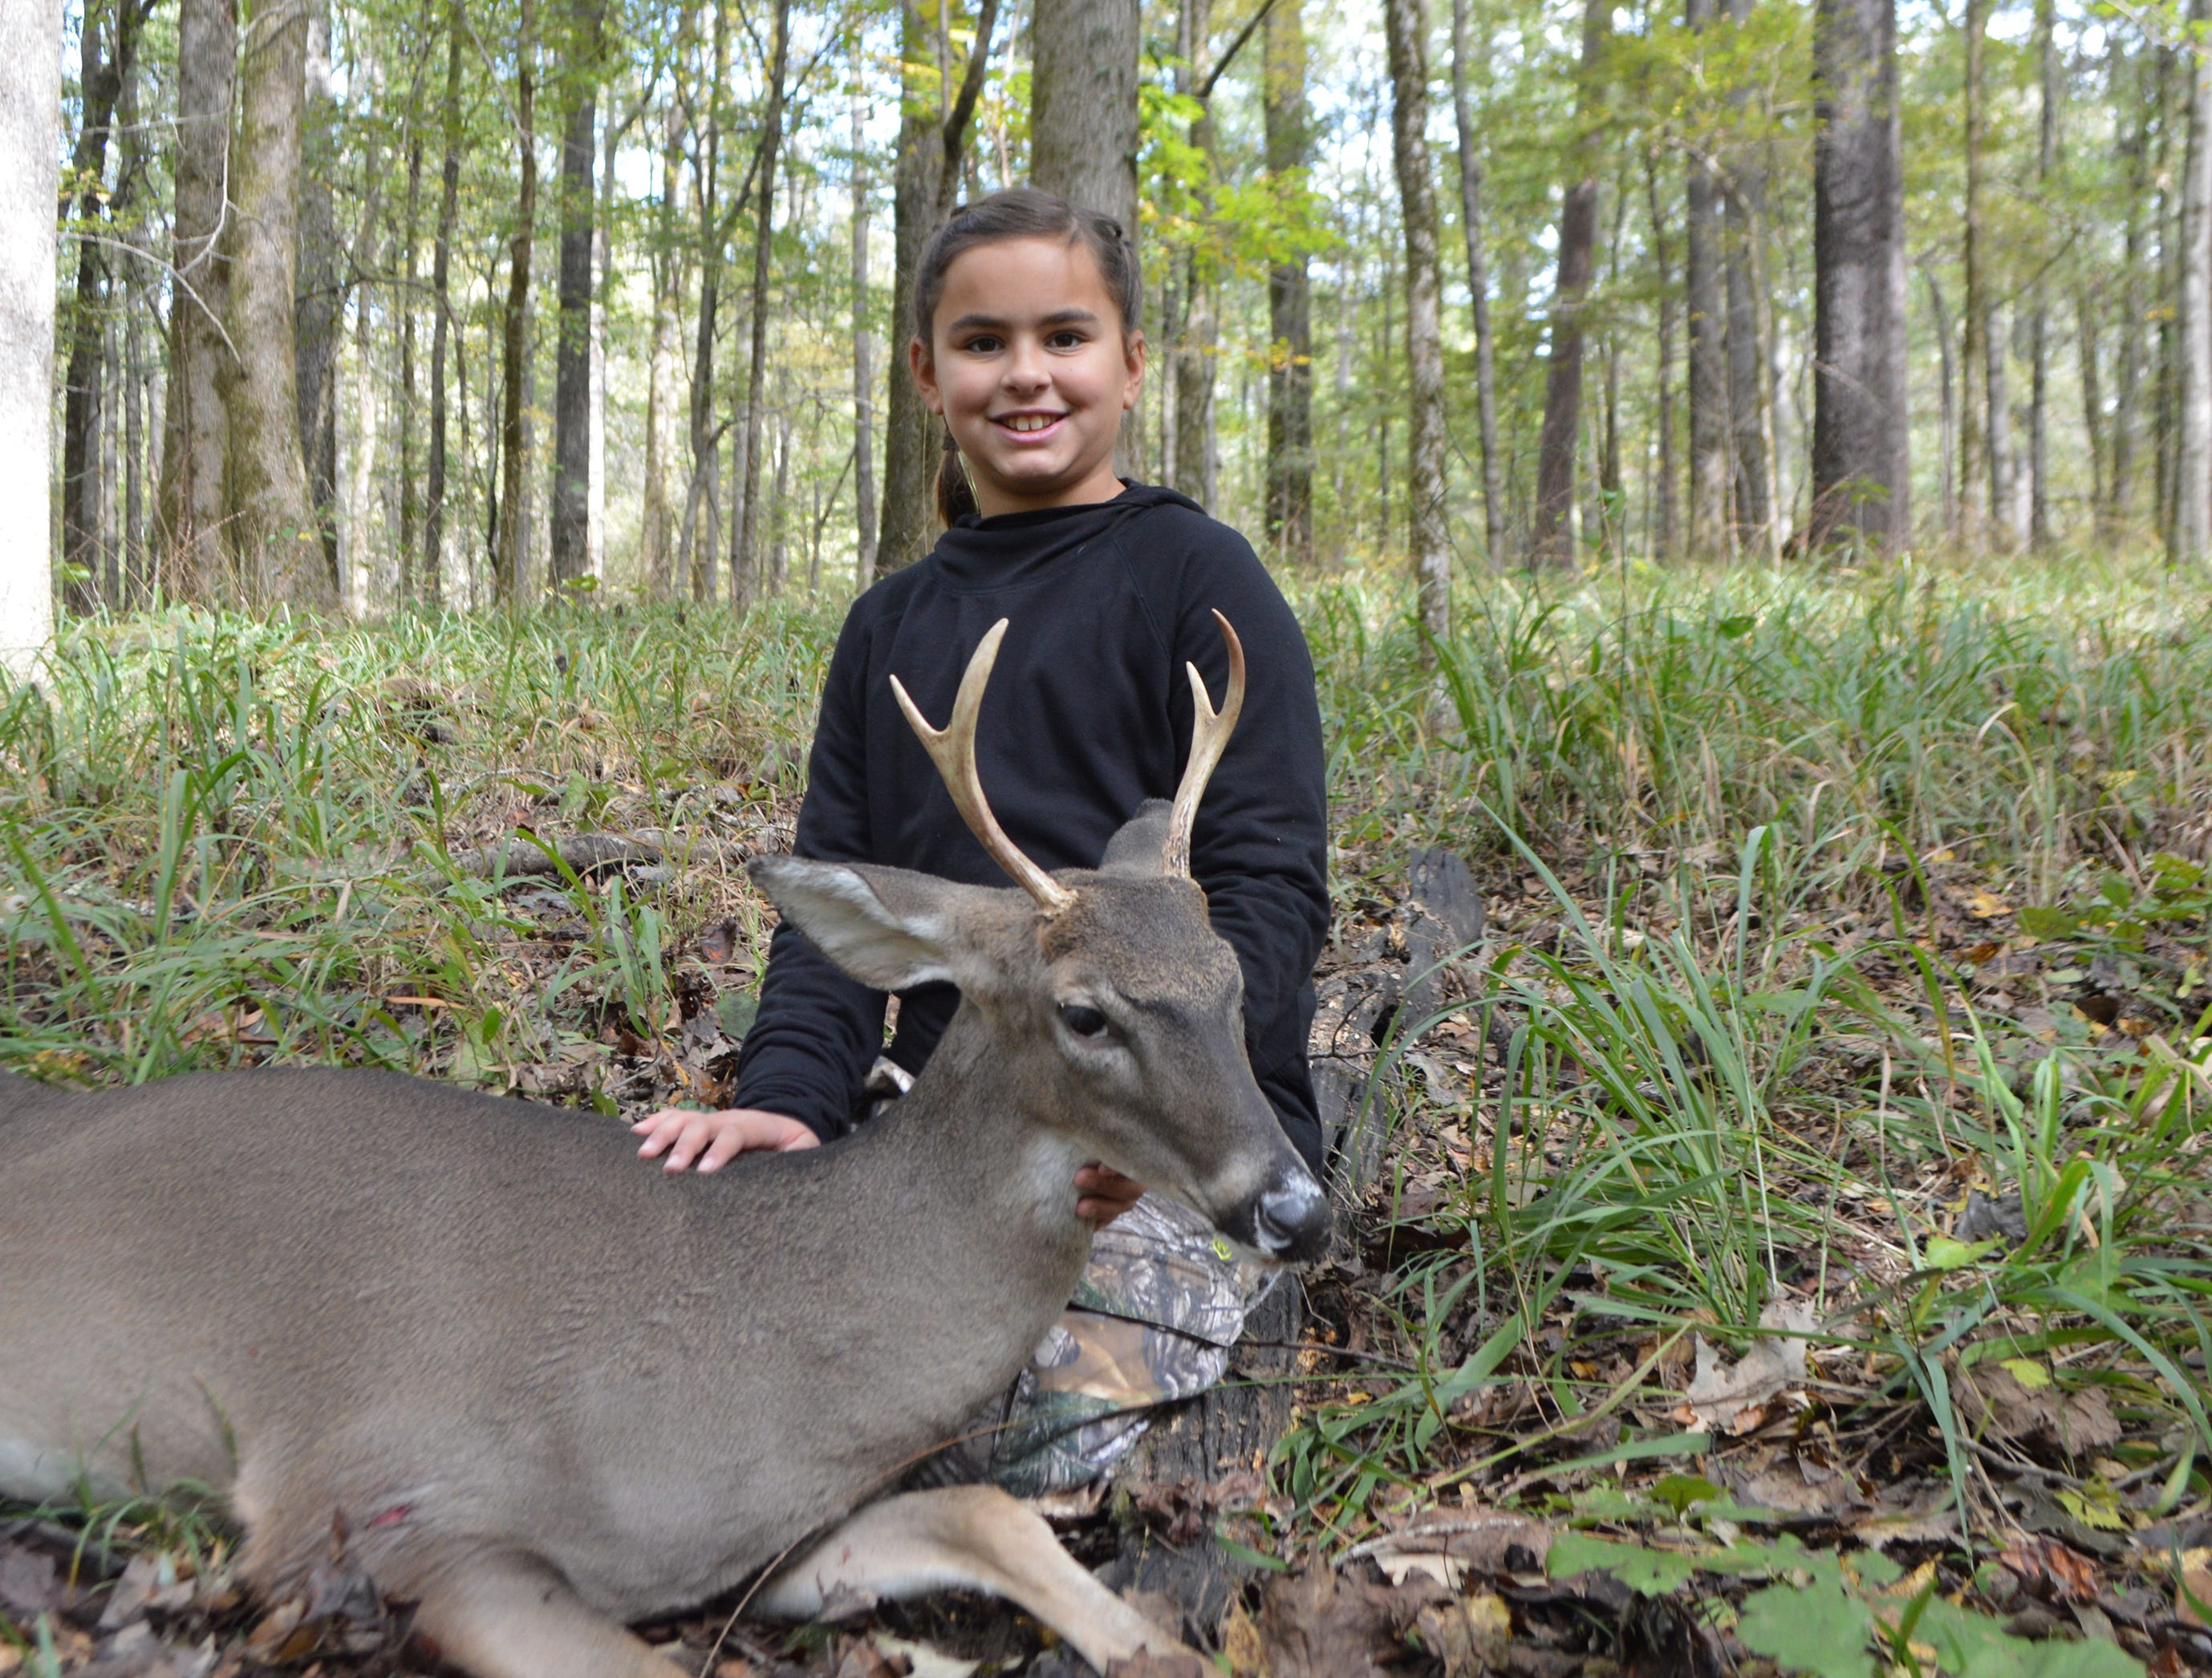 Clair Farrell 10, of Waveland, killed her first buck while hunting public land with her father. She shot the deer at 80 yards while hunting from a ground blind.